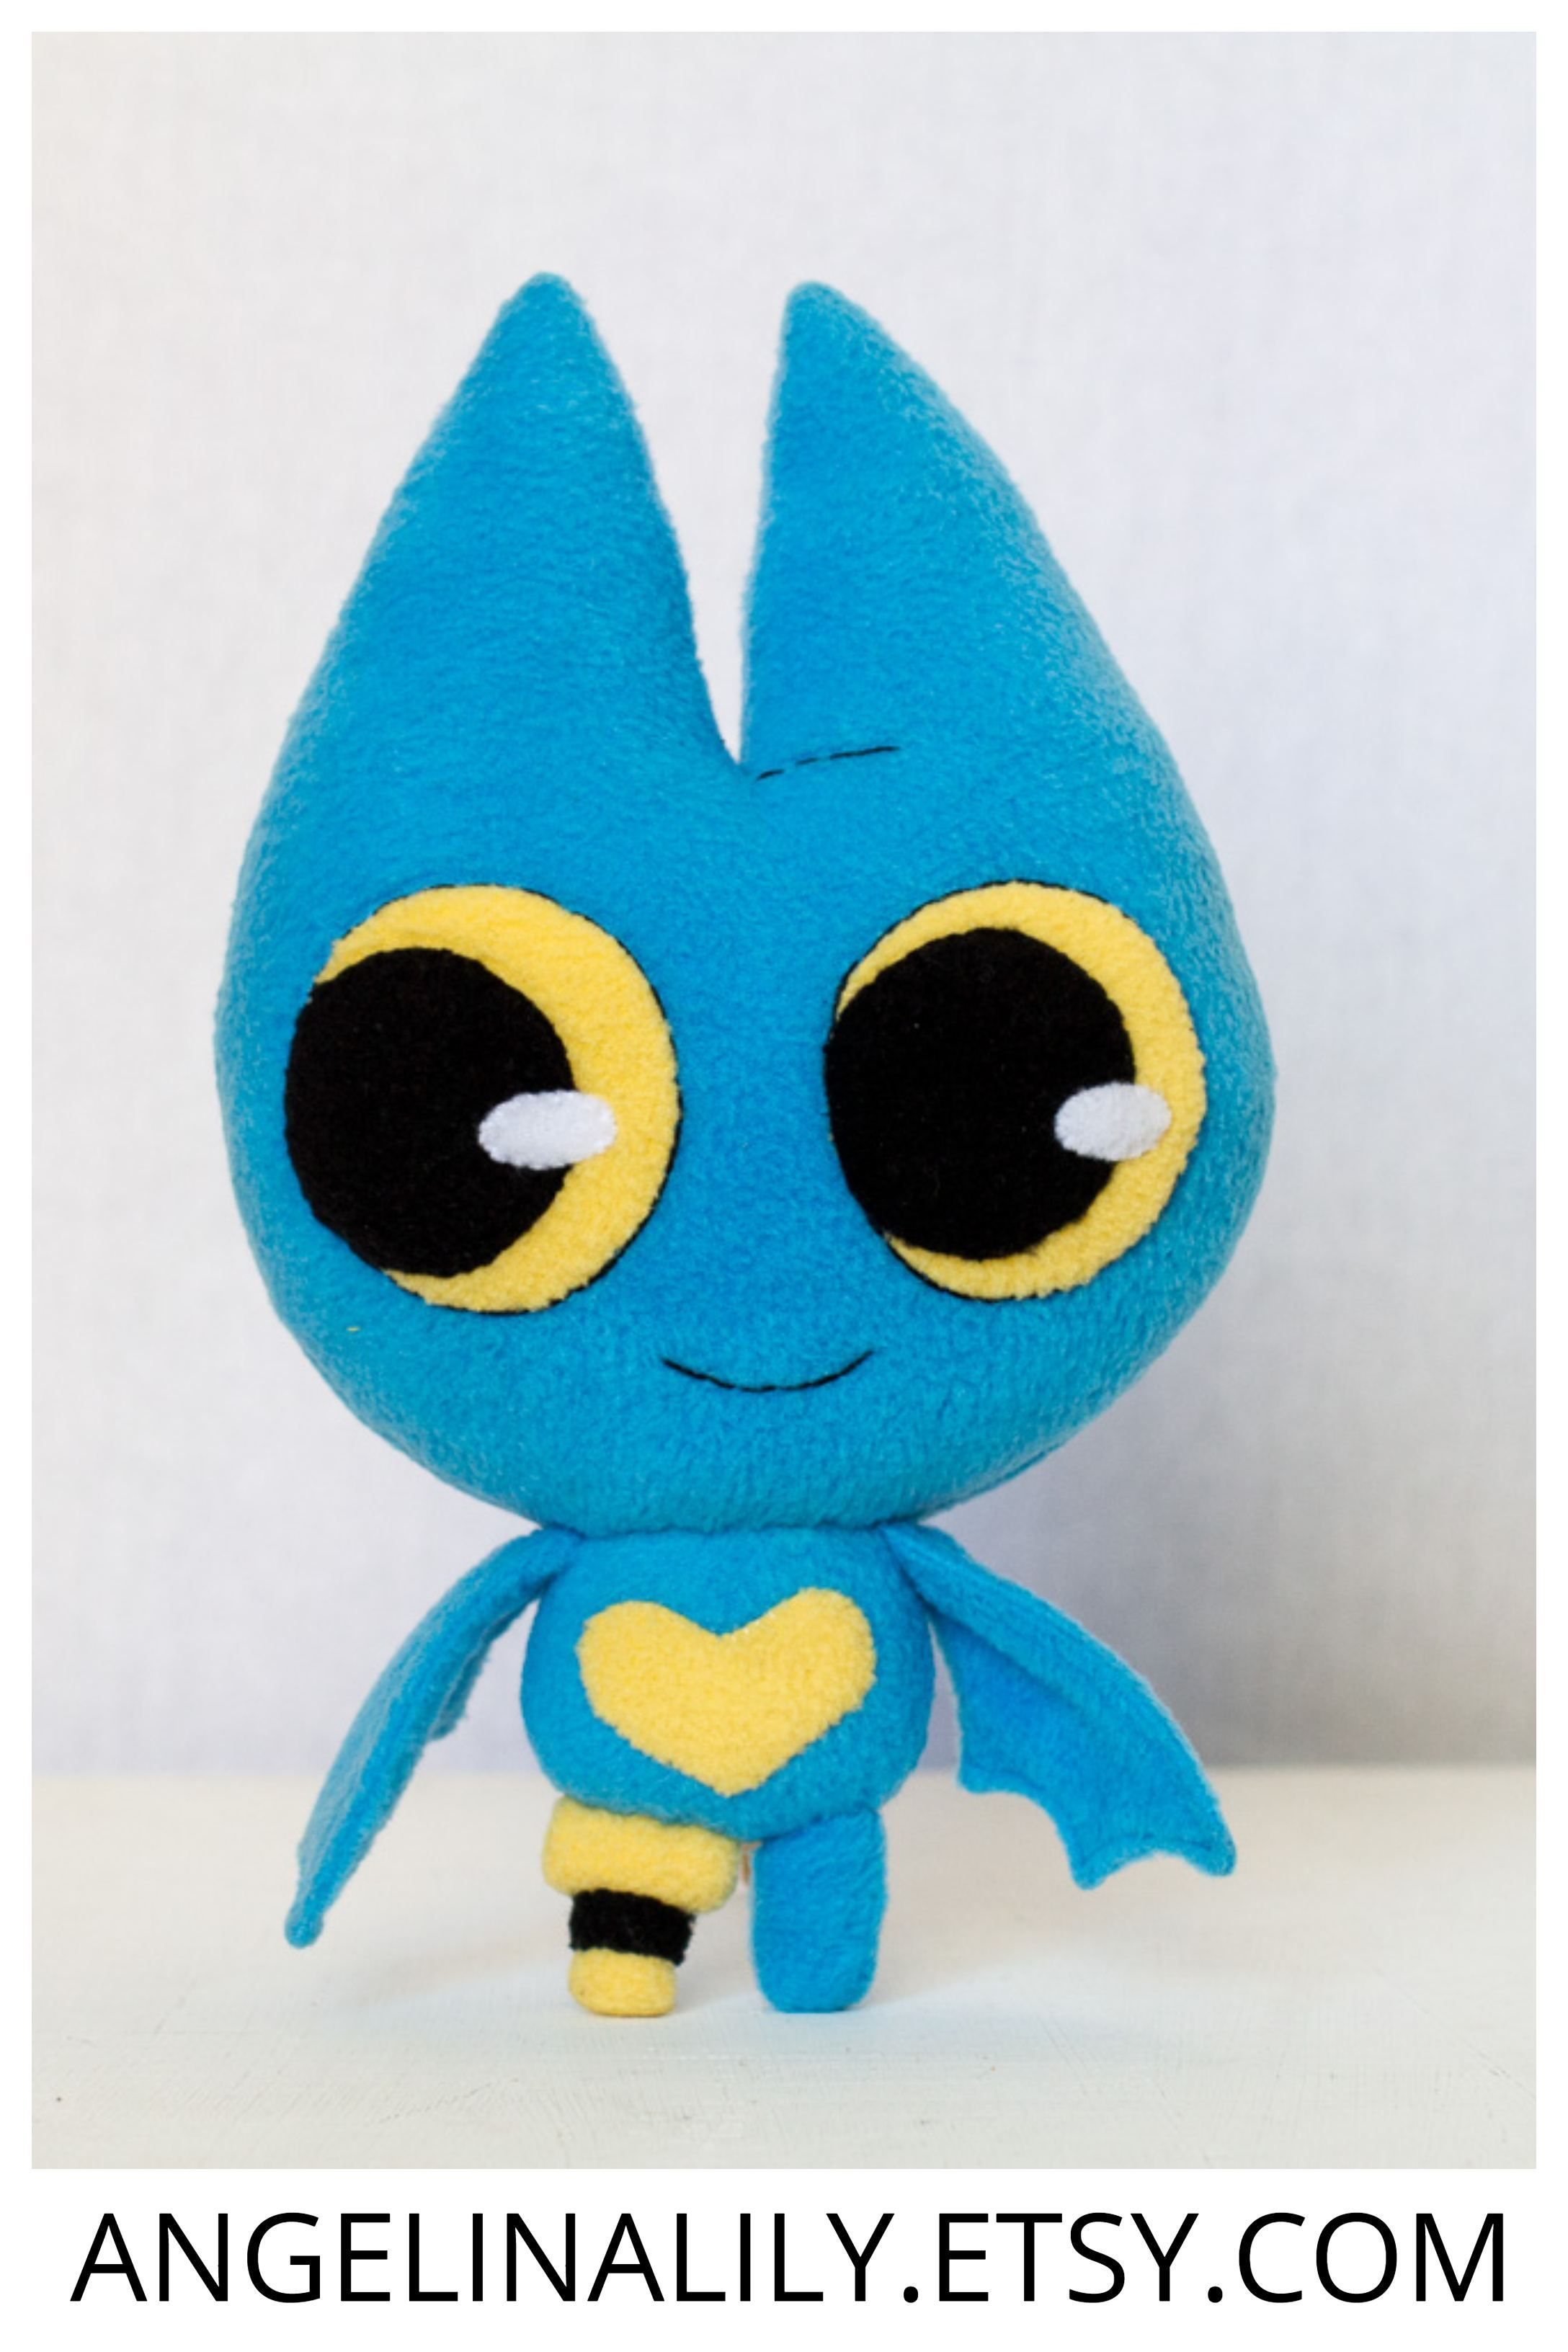 Adorabat Plush Mao Mao Heroes Of Pure Heart Toys Inspired Etsy Handmade Soft Toys Handmade Plush Dolls Handmade Specially for the fans of mao mao heroes of pure heart :) ●about adorabat doll: adorabat plush mao mao heroes of pure